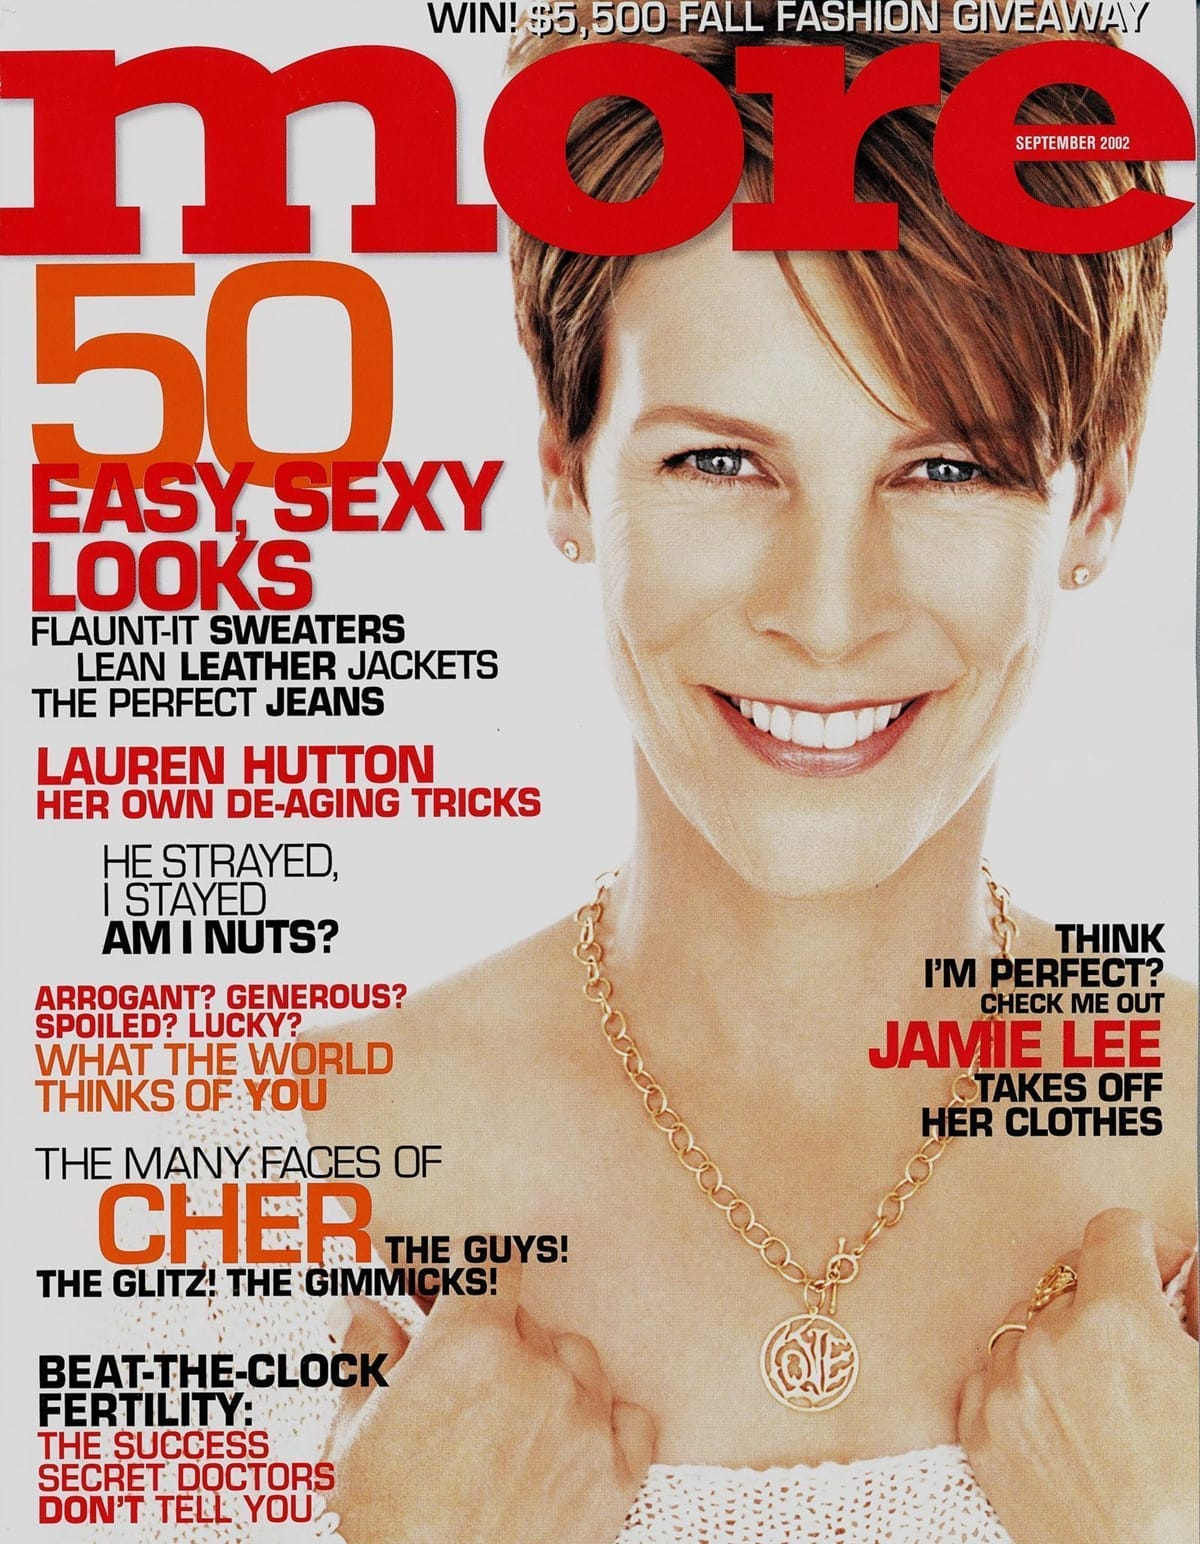 In September 2002, Jamie Lee Curtis posed for More magazine with no makeup and no retouching